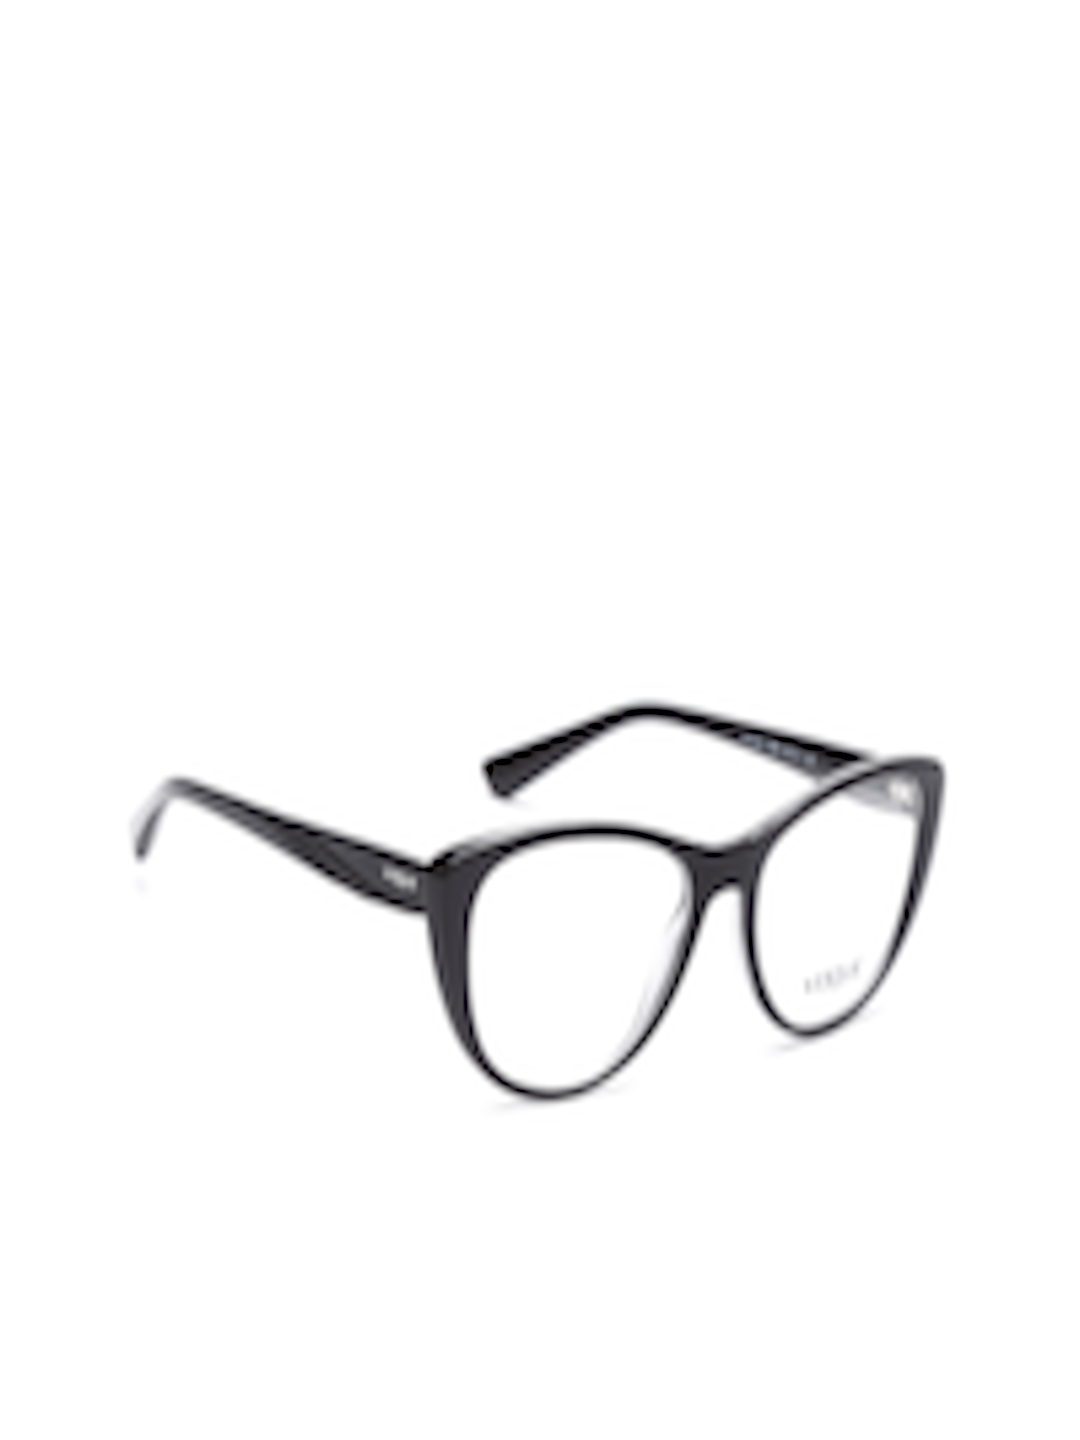 7894be0a357 Buy Vogue Women Black Cat Eye Frames 0VO5102238551 - Frames for Women  1543343